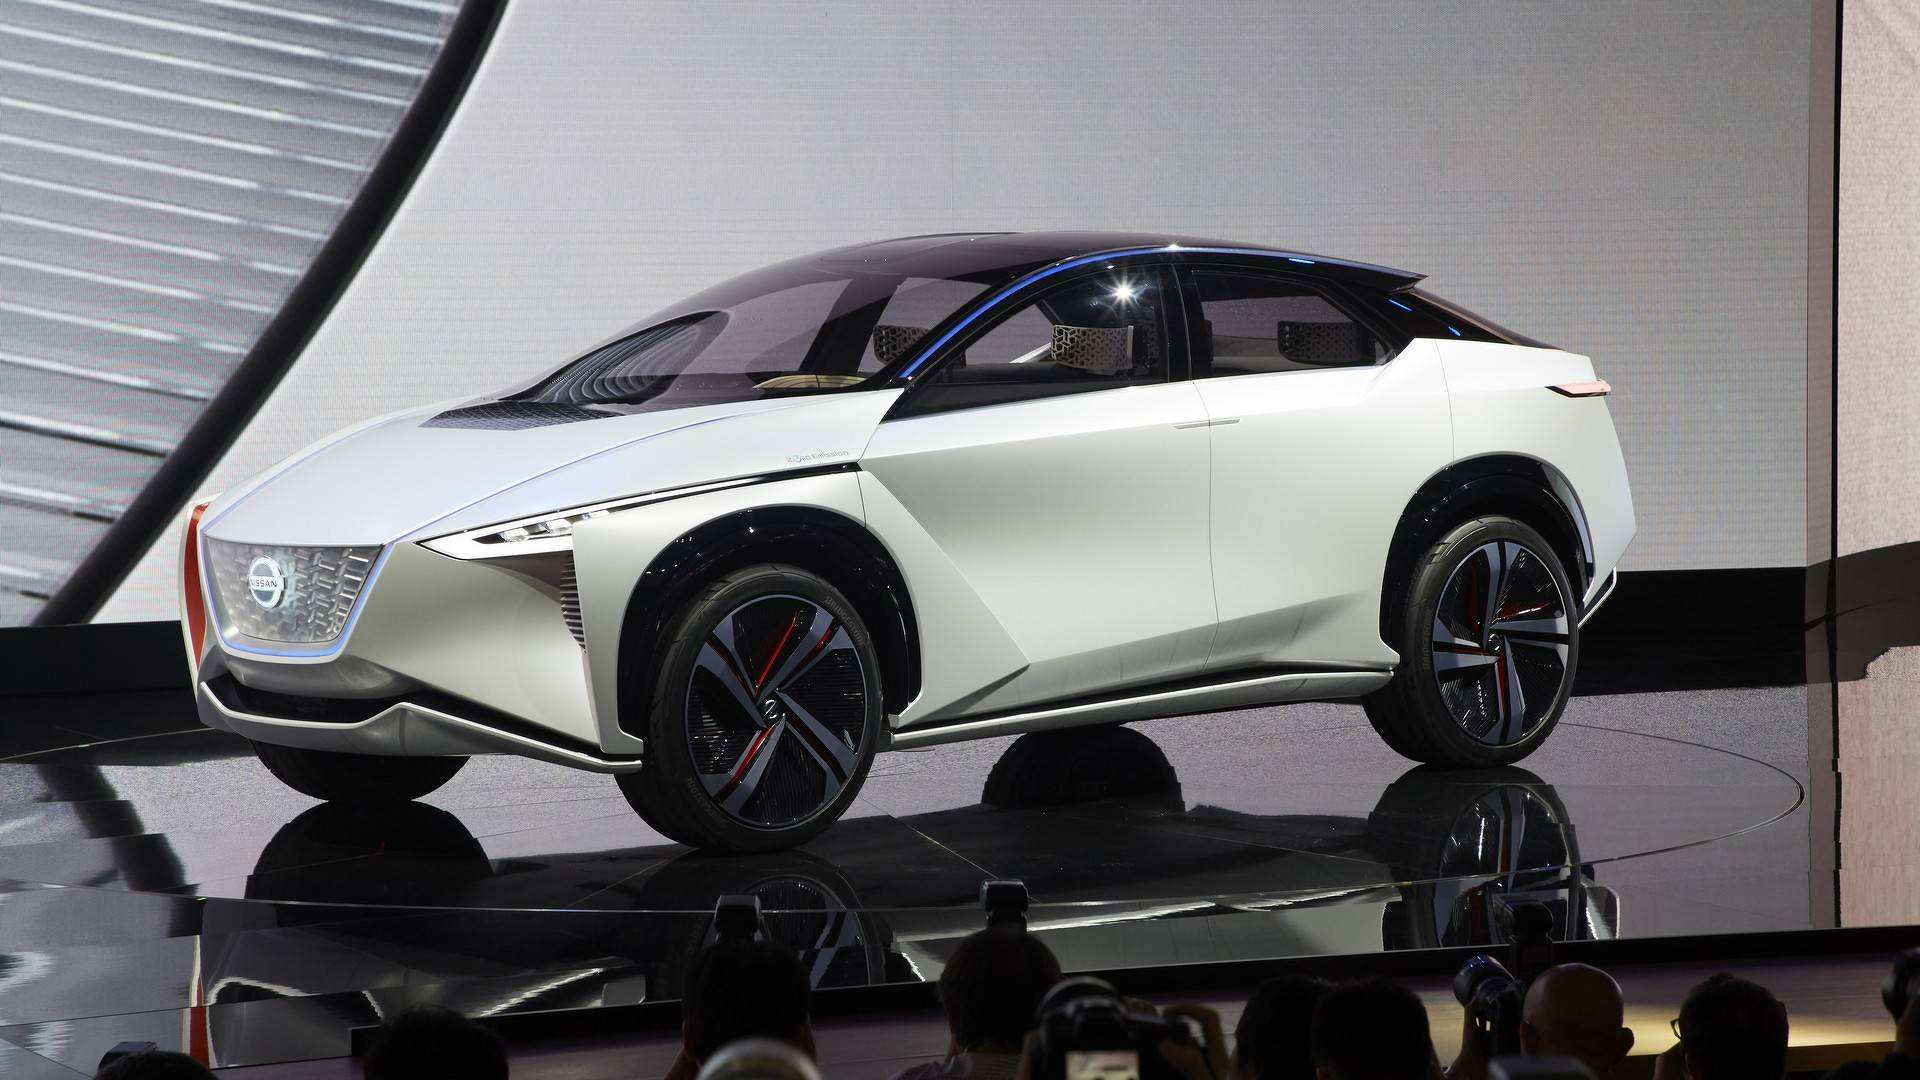 90 Great Nissan Concept 2020 Suv Pictures with Nissan Concept 2020 Suv